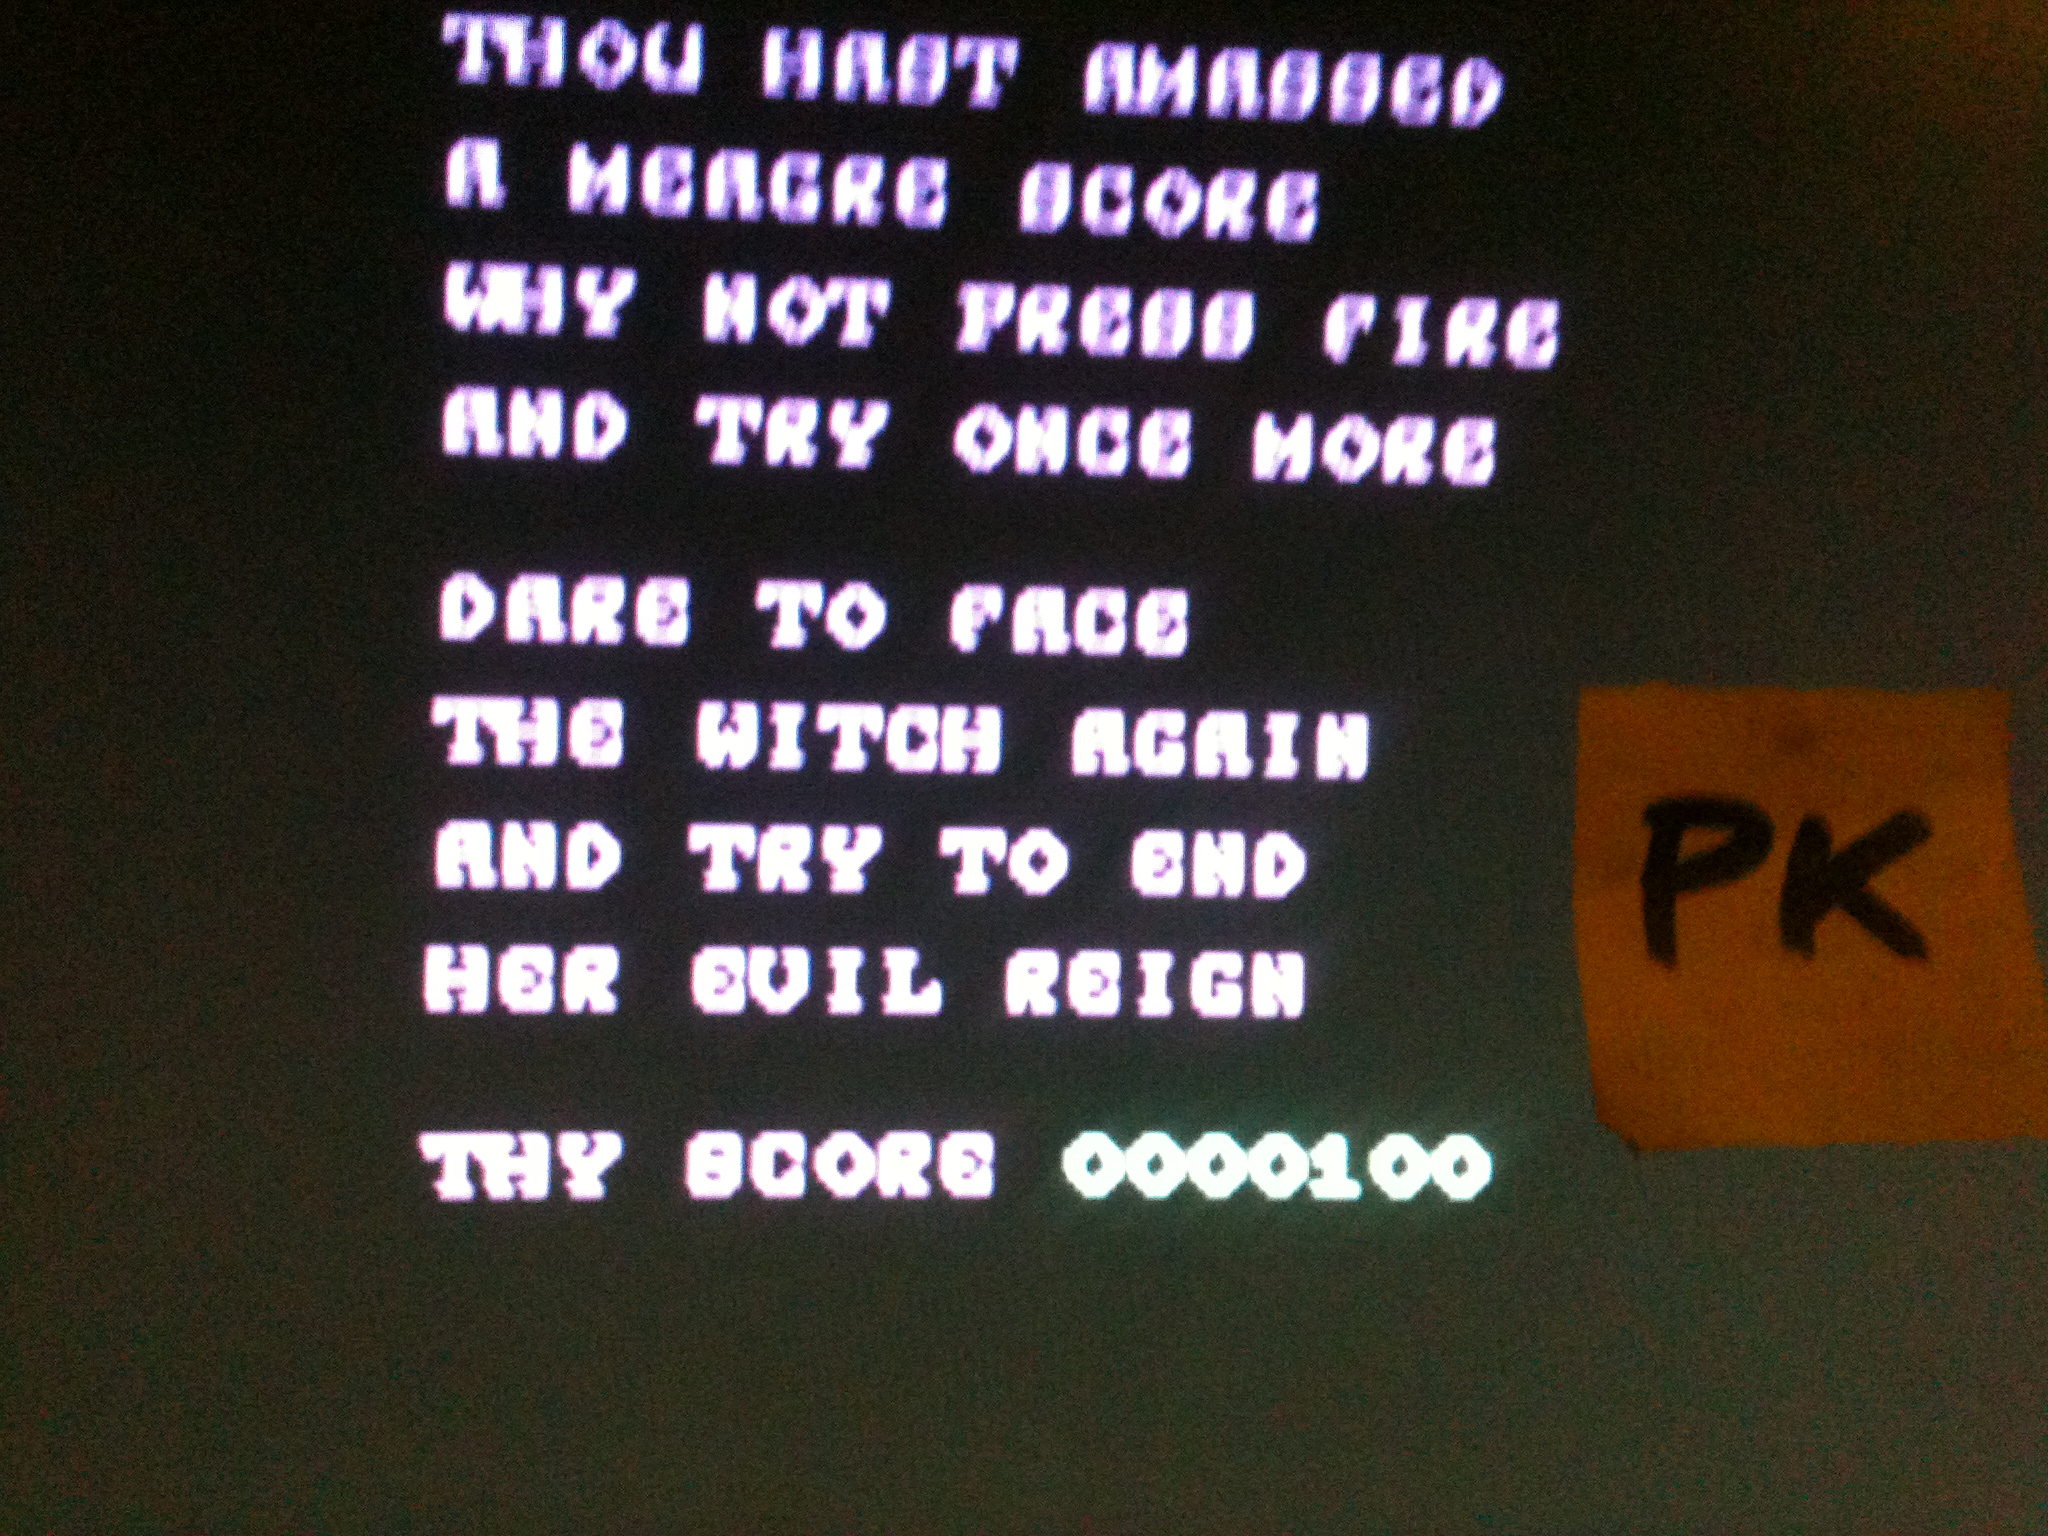 kernzy: Cauldron II (Commodore 64 Emulated) 100 points on 2015-12-19 13:58:48